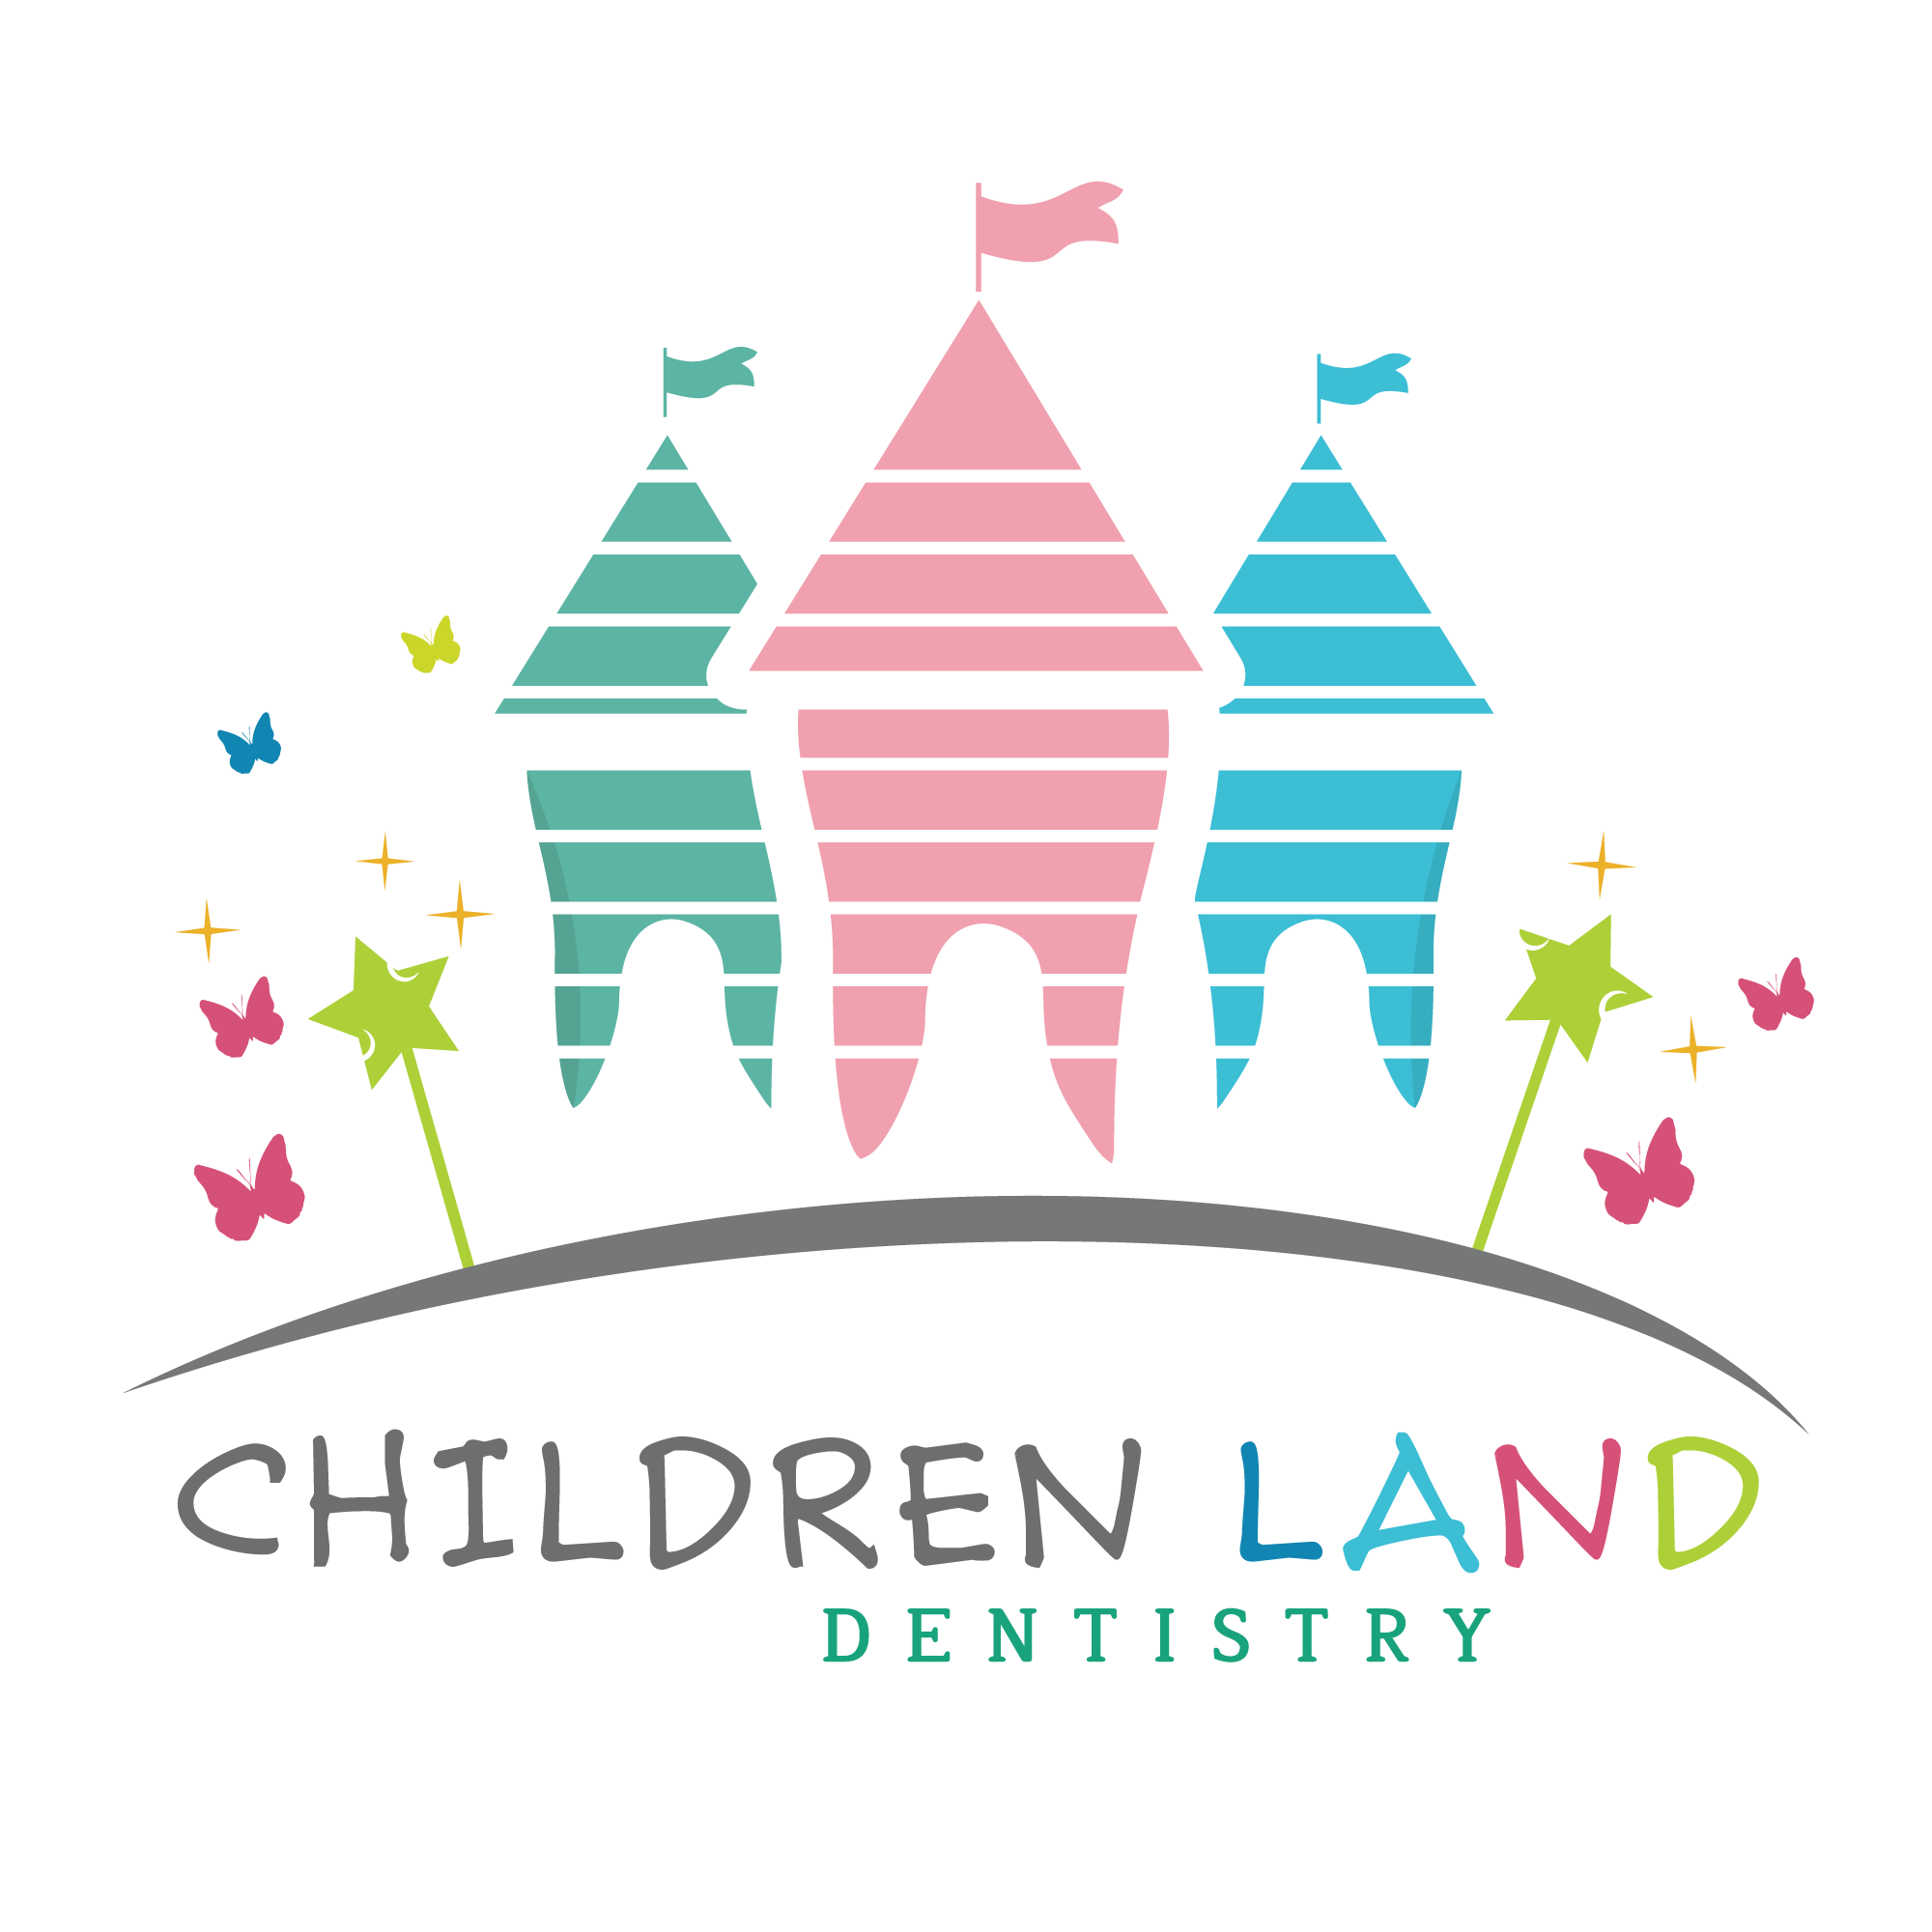 Children land dentistry logo. Light clipart dentist